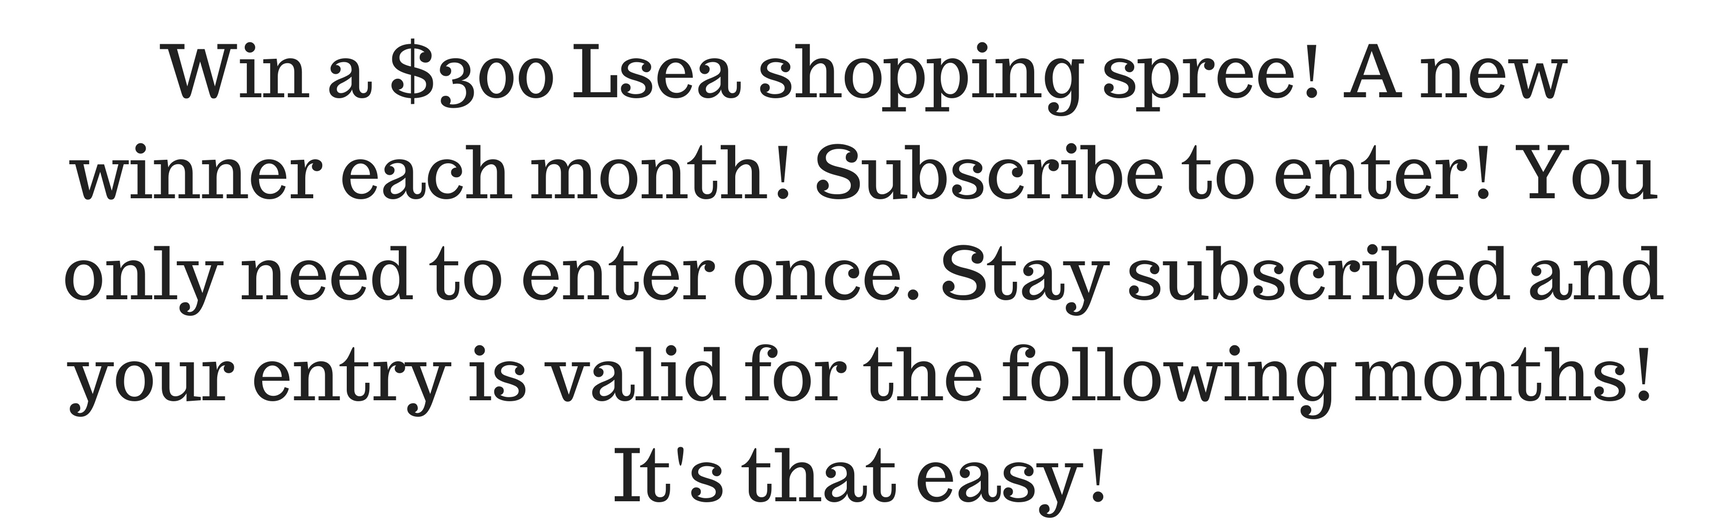 Win a $300 Lsea shopping spree! A new winner each month! Subscribe to enter! You only need to enter once. Stay subscribed and your entry is valid for the following months!.png